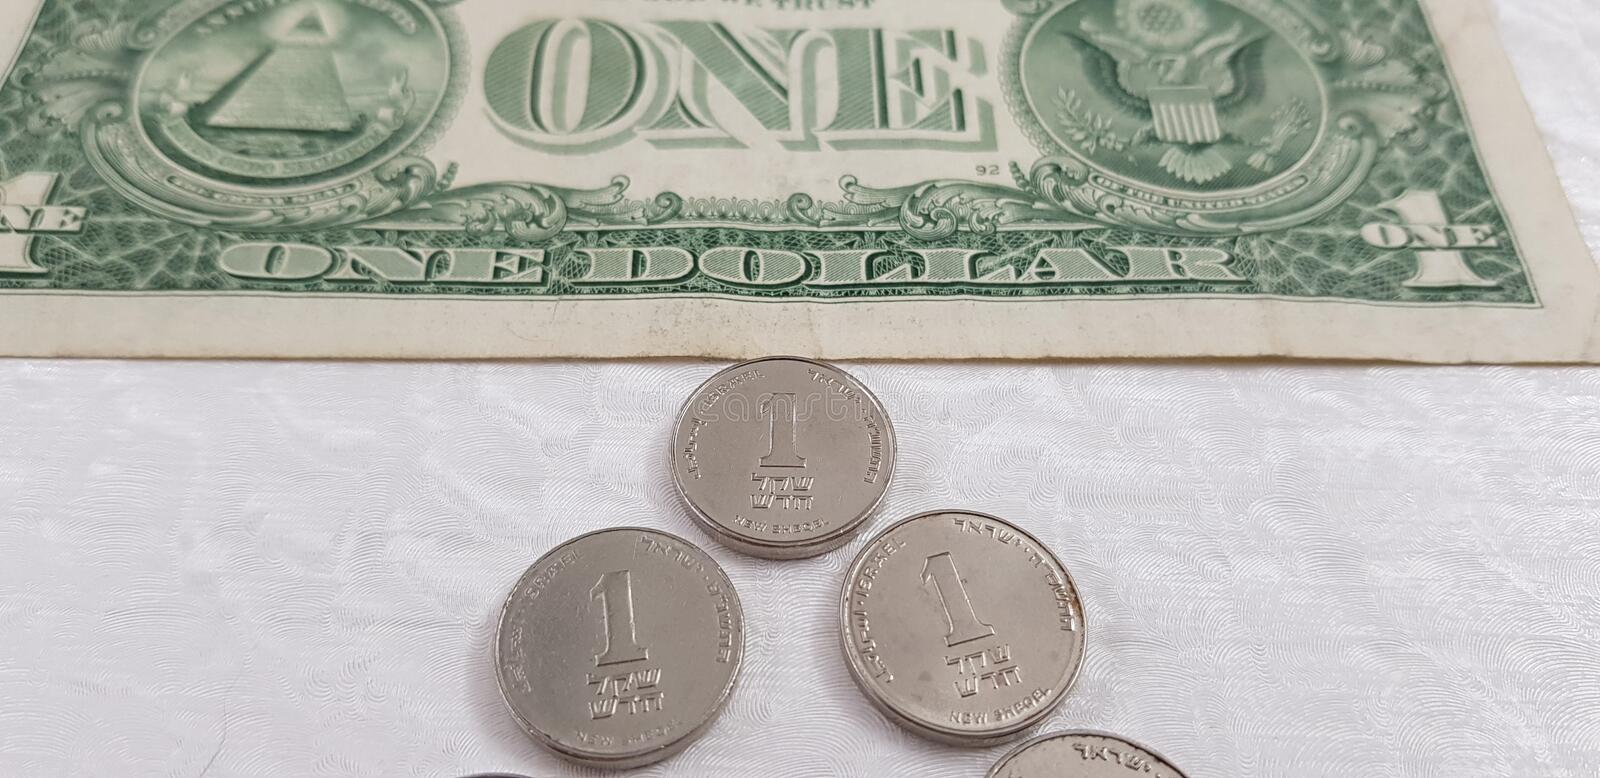 Three Israeli sheckel coins on white background near american dollar banknote stock photos